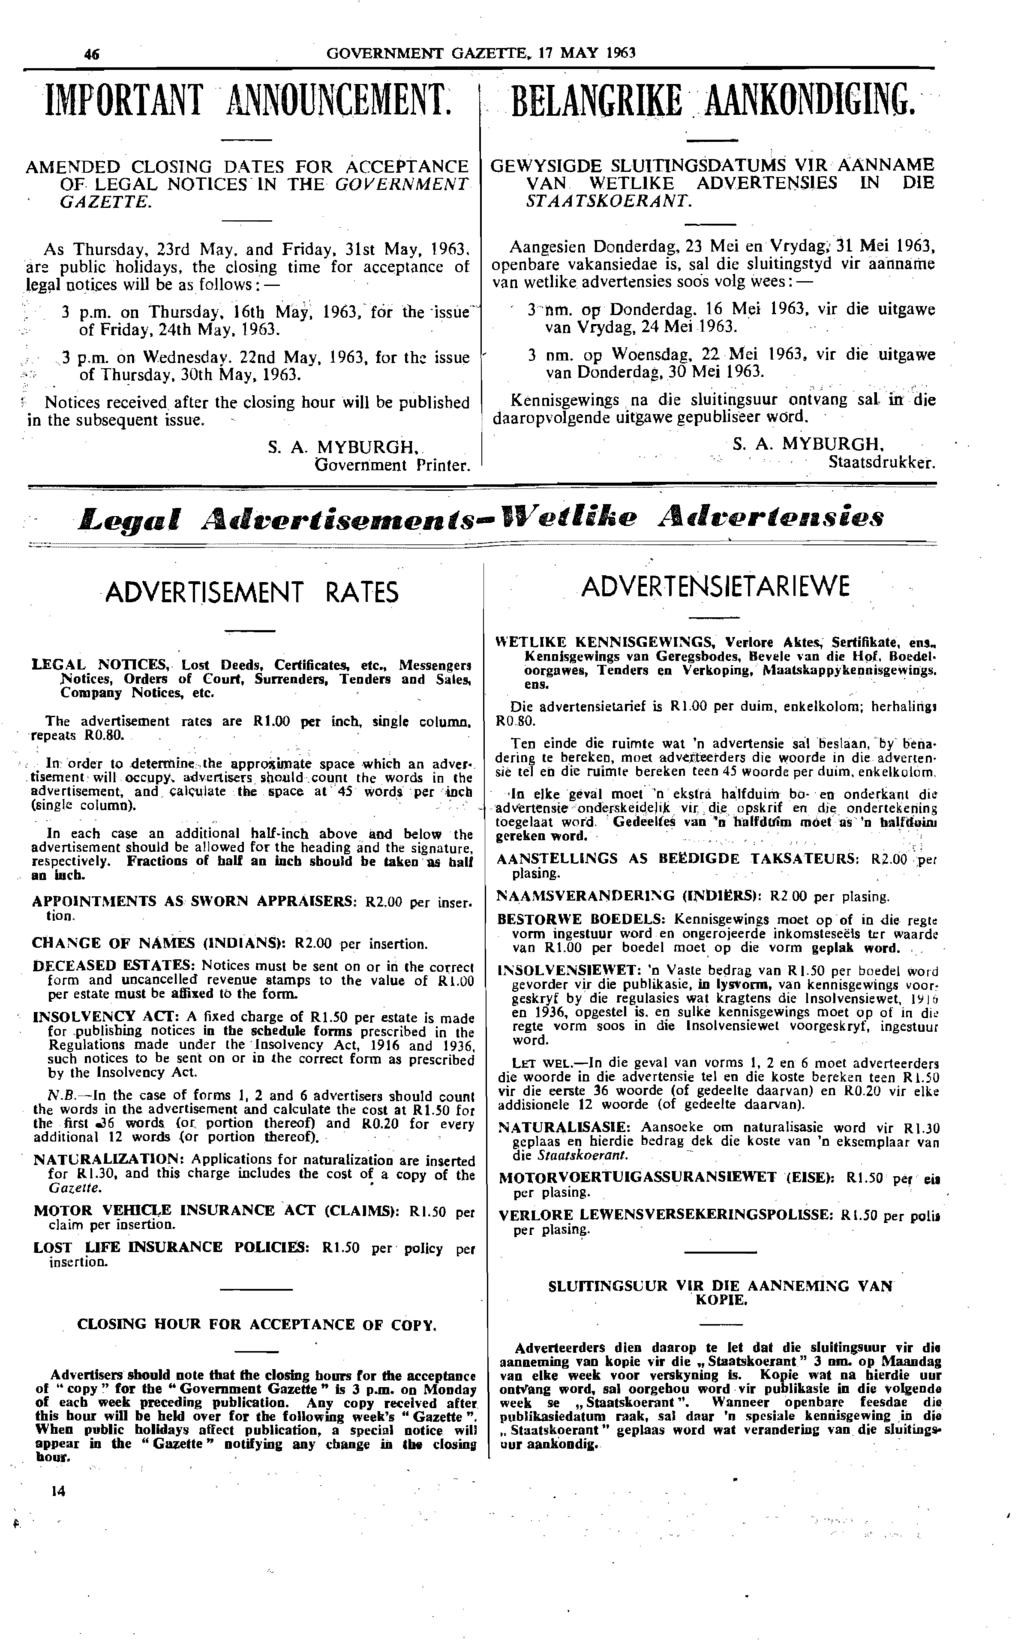 46 IMPORTANT ANNOUNCEMENT. AMENDED CLOSING DATES FOR ACCEPTANCE OF LEGAL NOTICES IN THE GOVERNMENT GAZETTE. As Thursday, 23rd May. and Friday, 31st May, 1963. are public holidays.